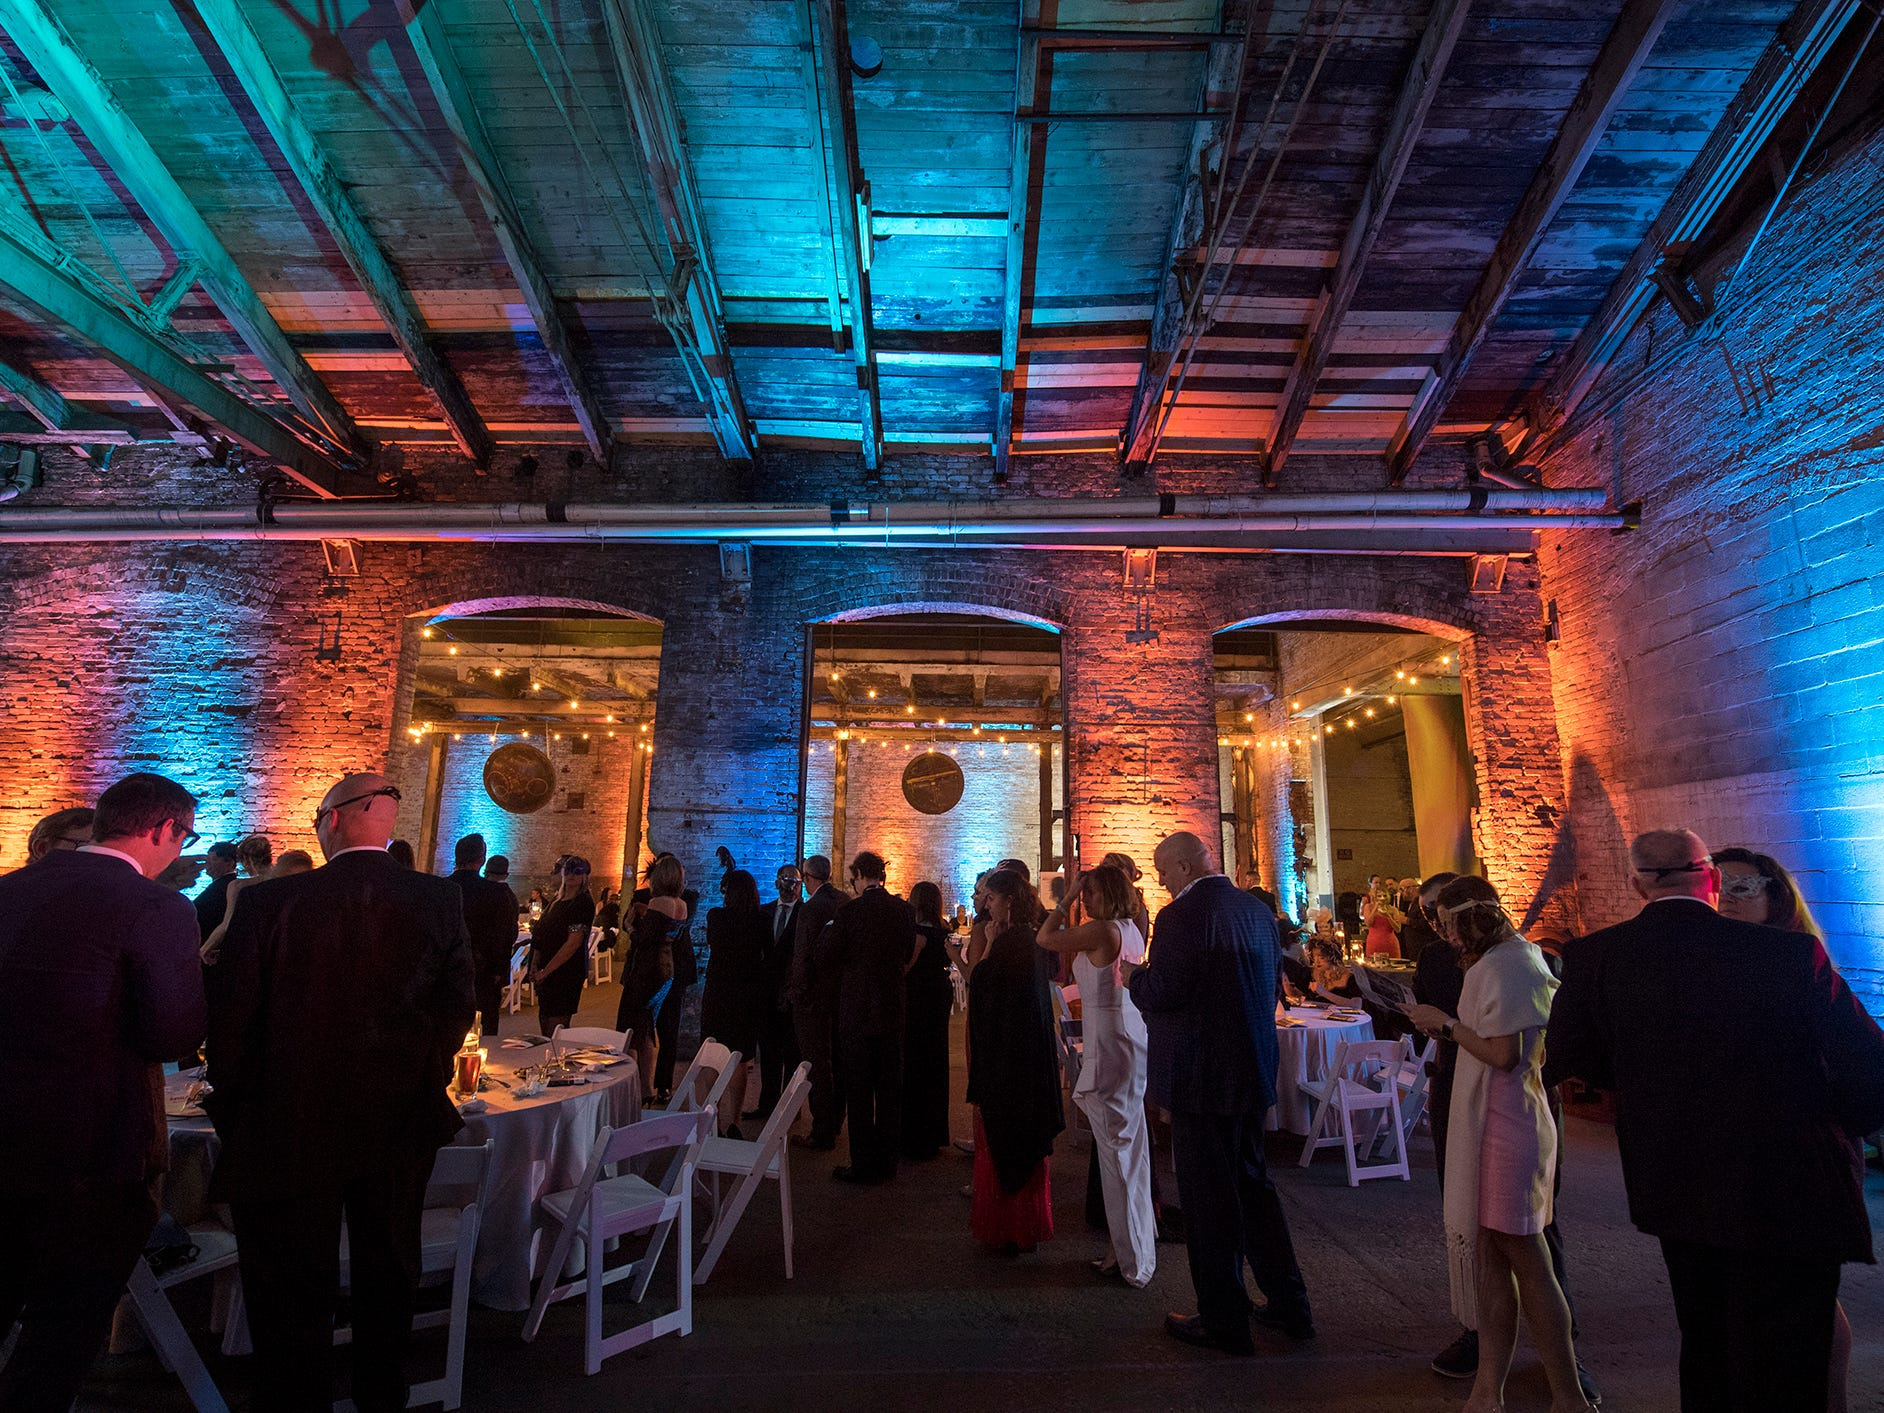 Downtown Inc.'s Fifth Annual Masquerade Ball was held at 145 N. Hartley Street Saturday, the site of the former Pewtarex Foundry and York Manufacturing Company's ice-machine making plant.Ê